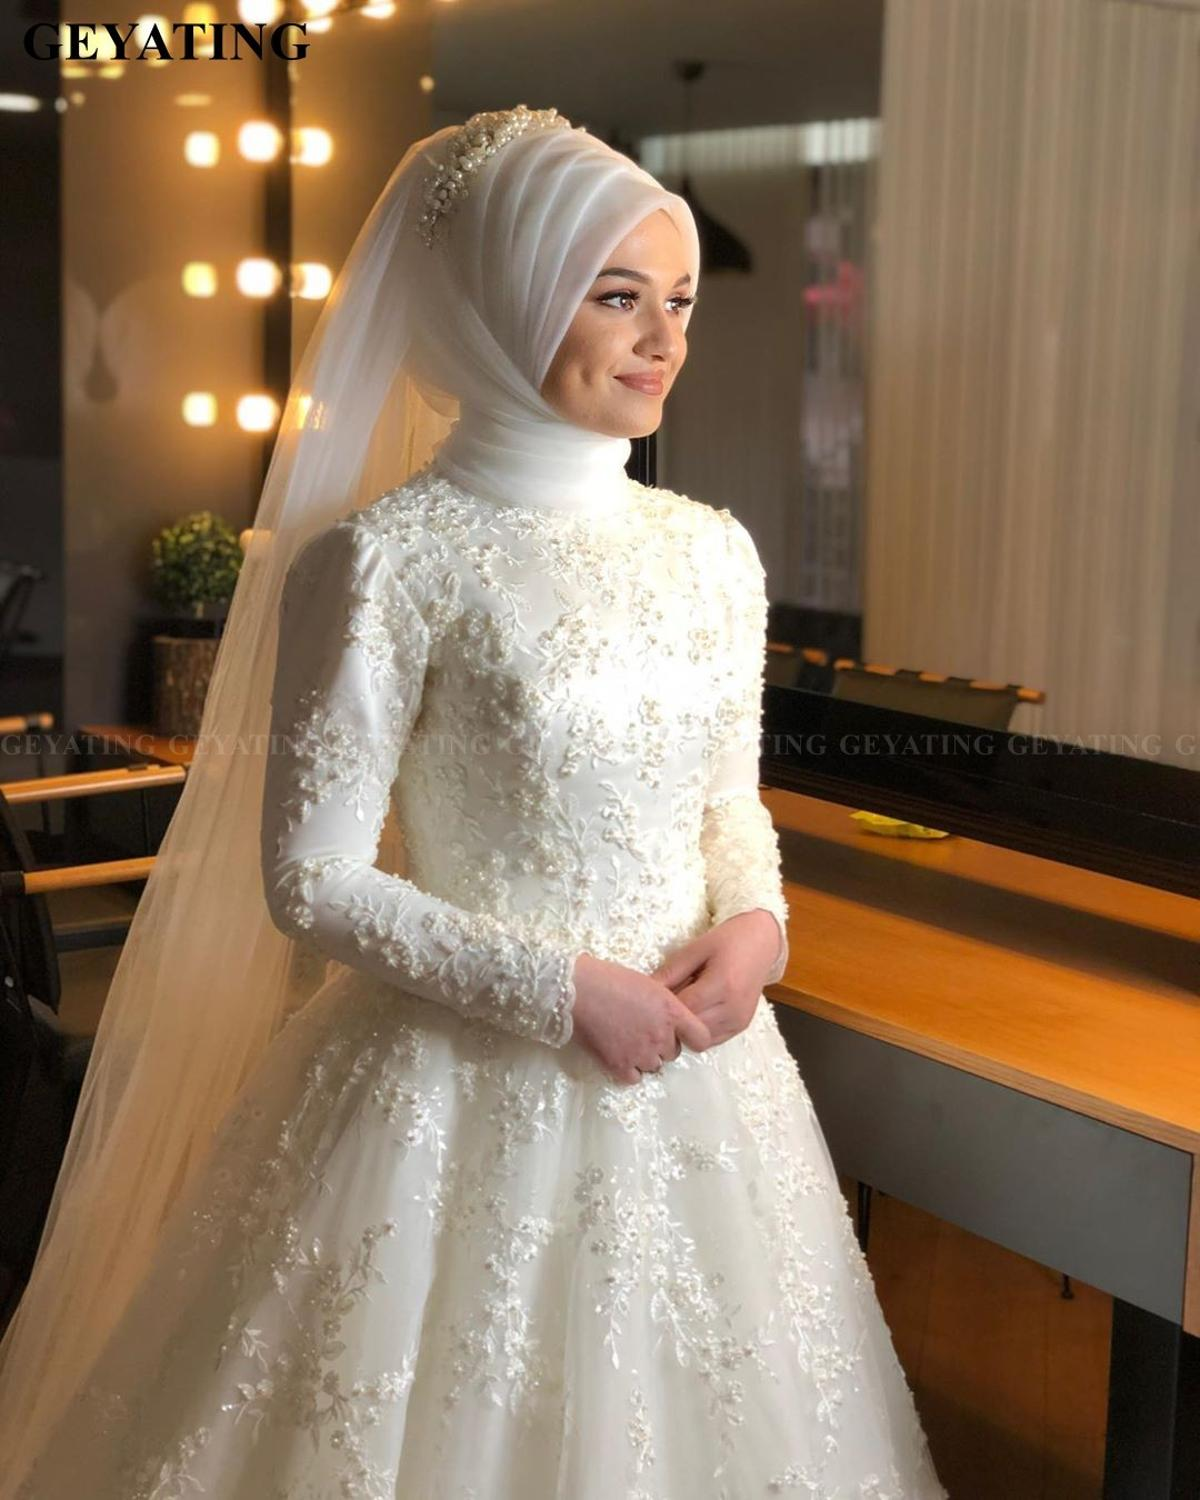 Image 5 - 2020 Elegant Off White Islamic Muslim Wedding Dress with Hijab Long Sleeves High Neck Pearls Lace Arabic Bridal Gowns in Dubai-in Wedding Dresses from Weddings & Events